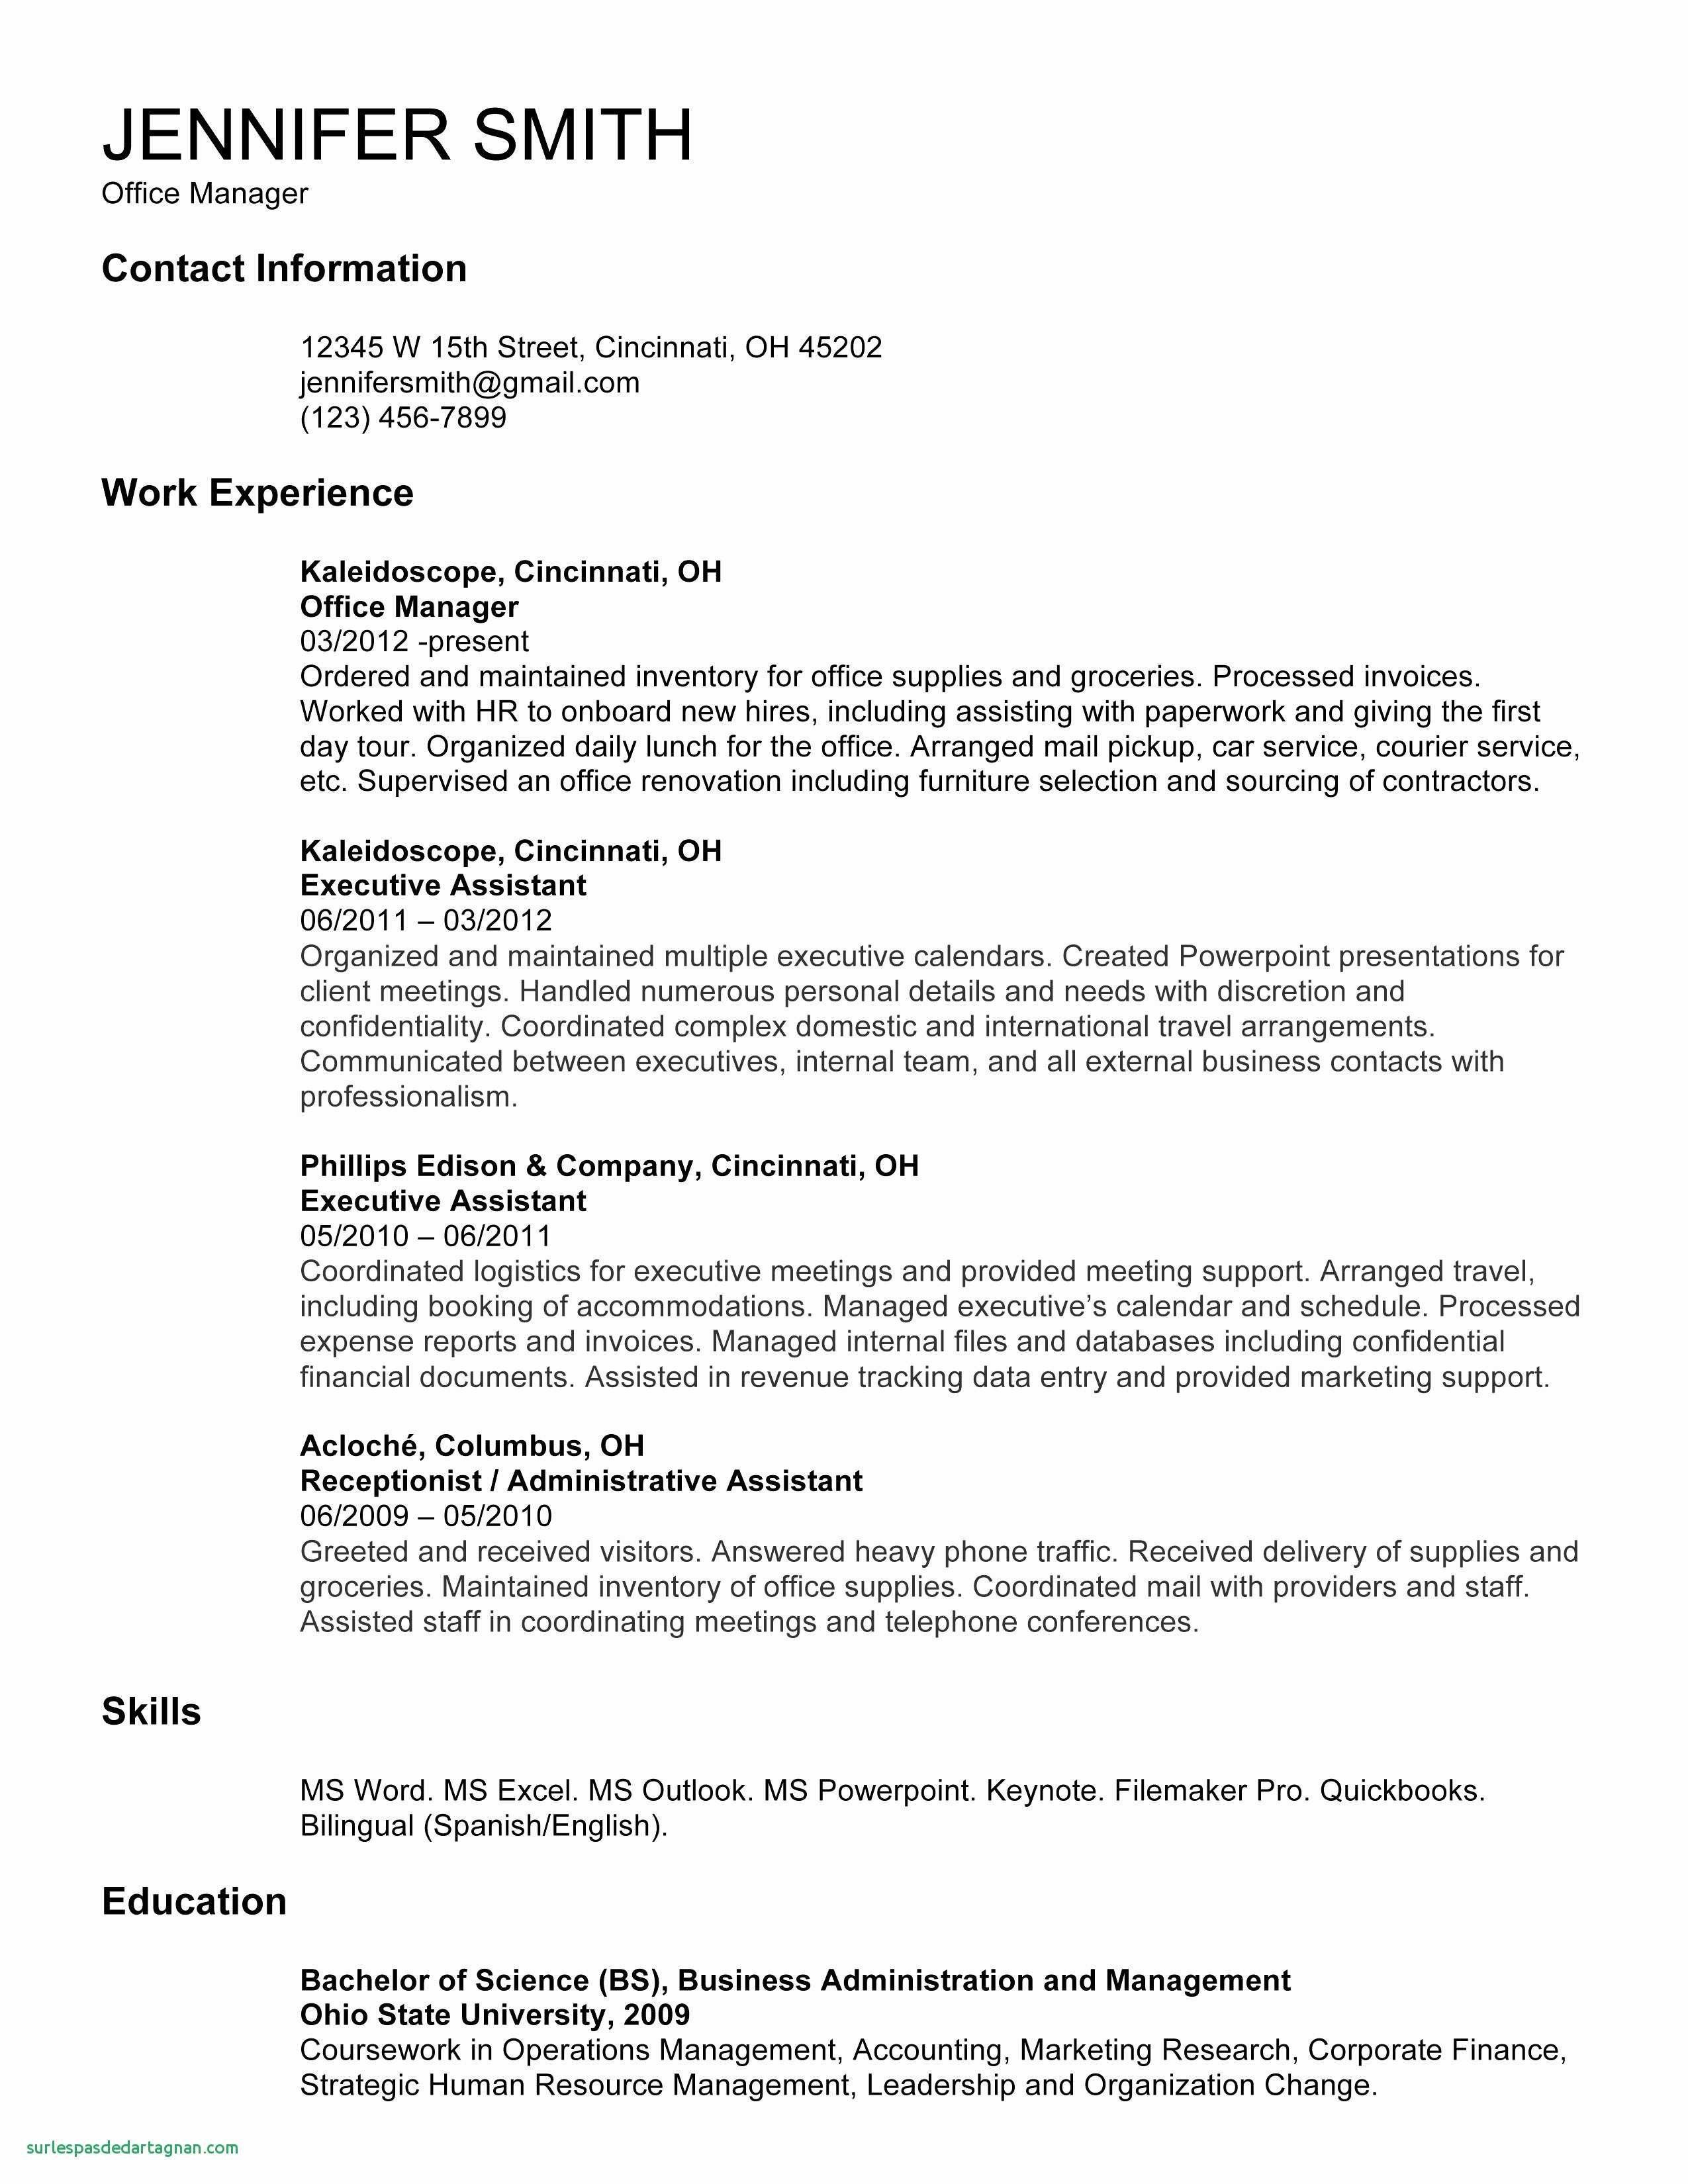 Free Downloadable Resume Templates for Word - Resume Template Download Free Unique ¢Ë†Å¡ Resume Template Download